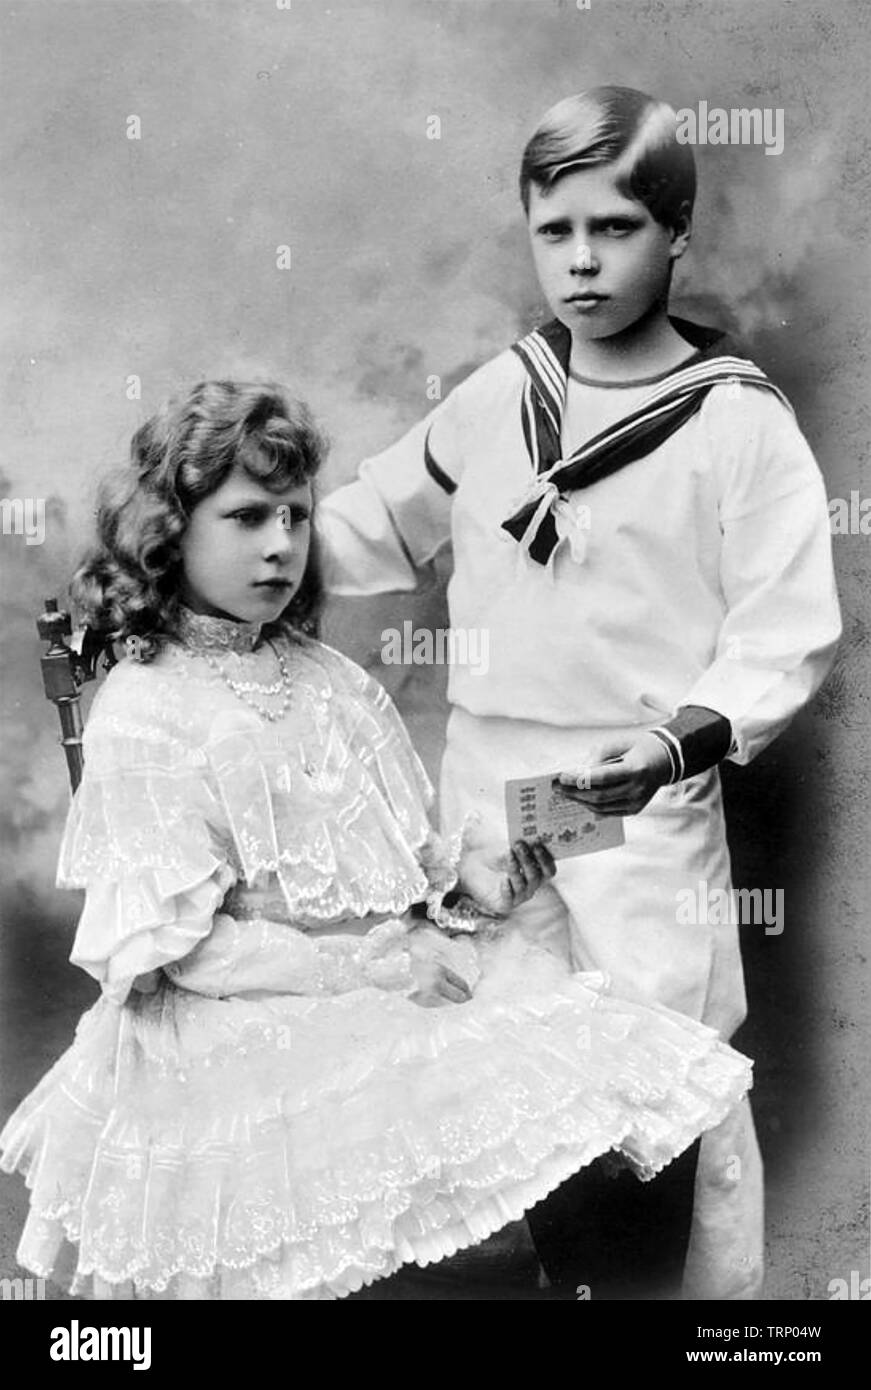 KING EDWARD VIII (1894-1972) as Prince Edward about 1905 with his sister Mary about 1904. She would later become Countess Harewood. - Stock Image